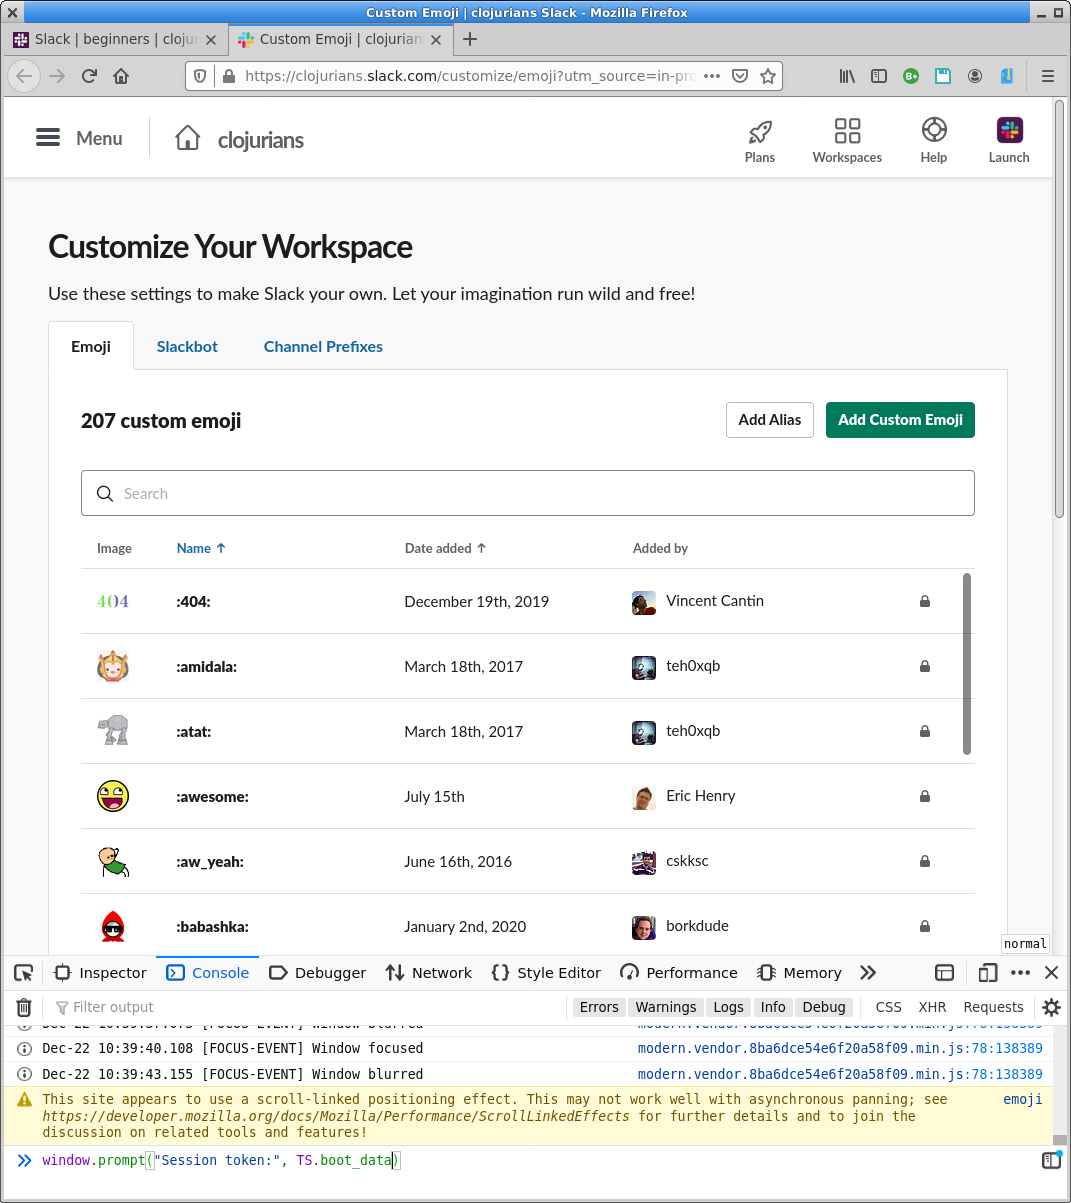 Firefox window with the developer console showing